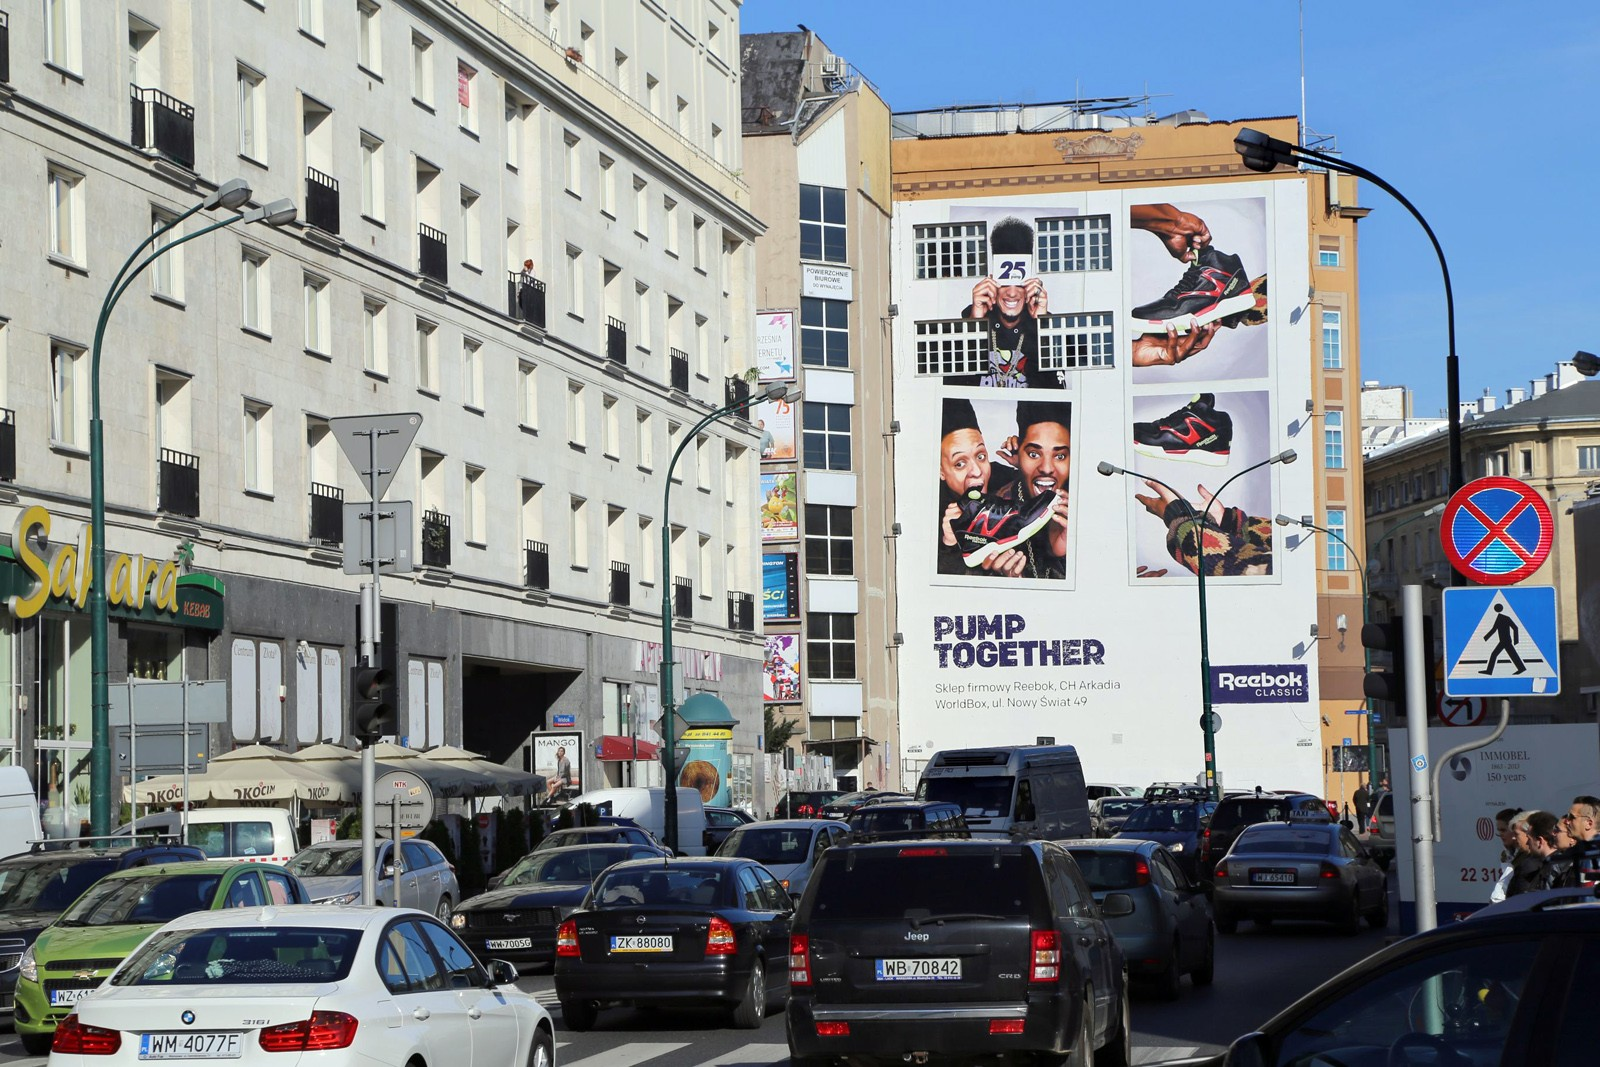 Reebok Warsaw Bracka street Pump Together marketing campaign on wall | Reebok Pump 25th anniversary | Portfolio